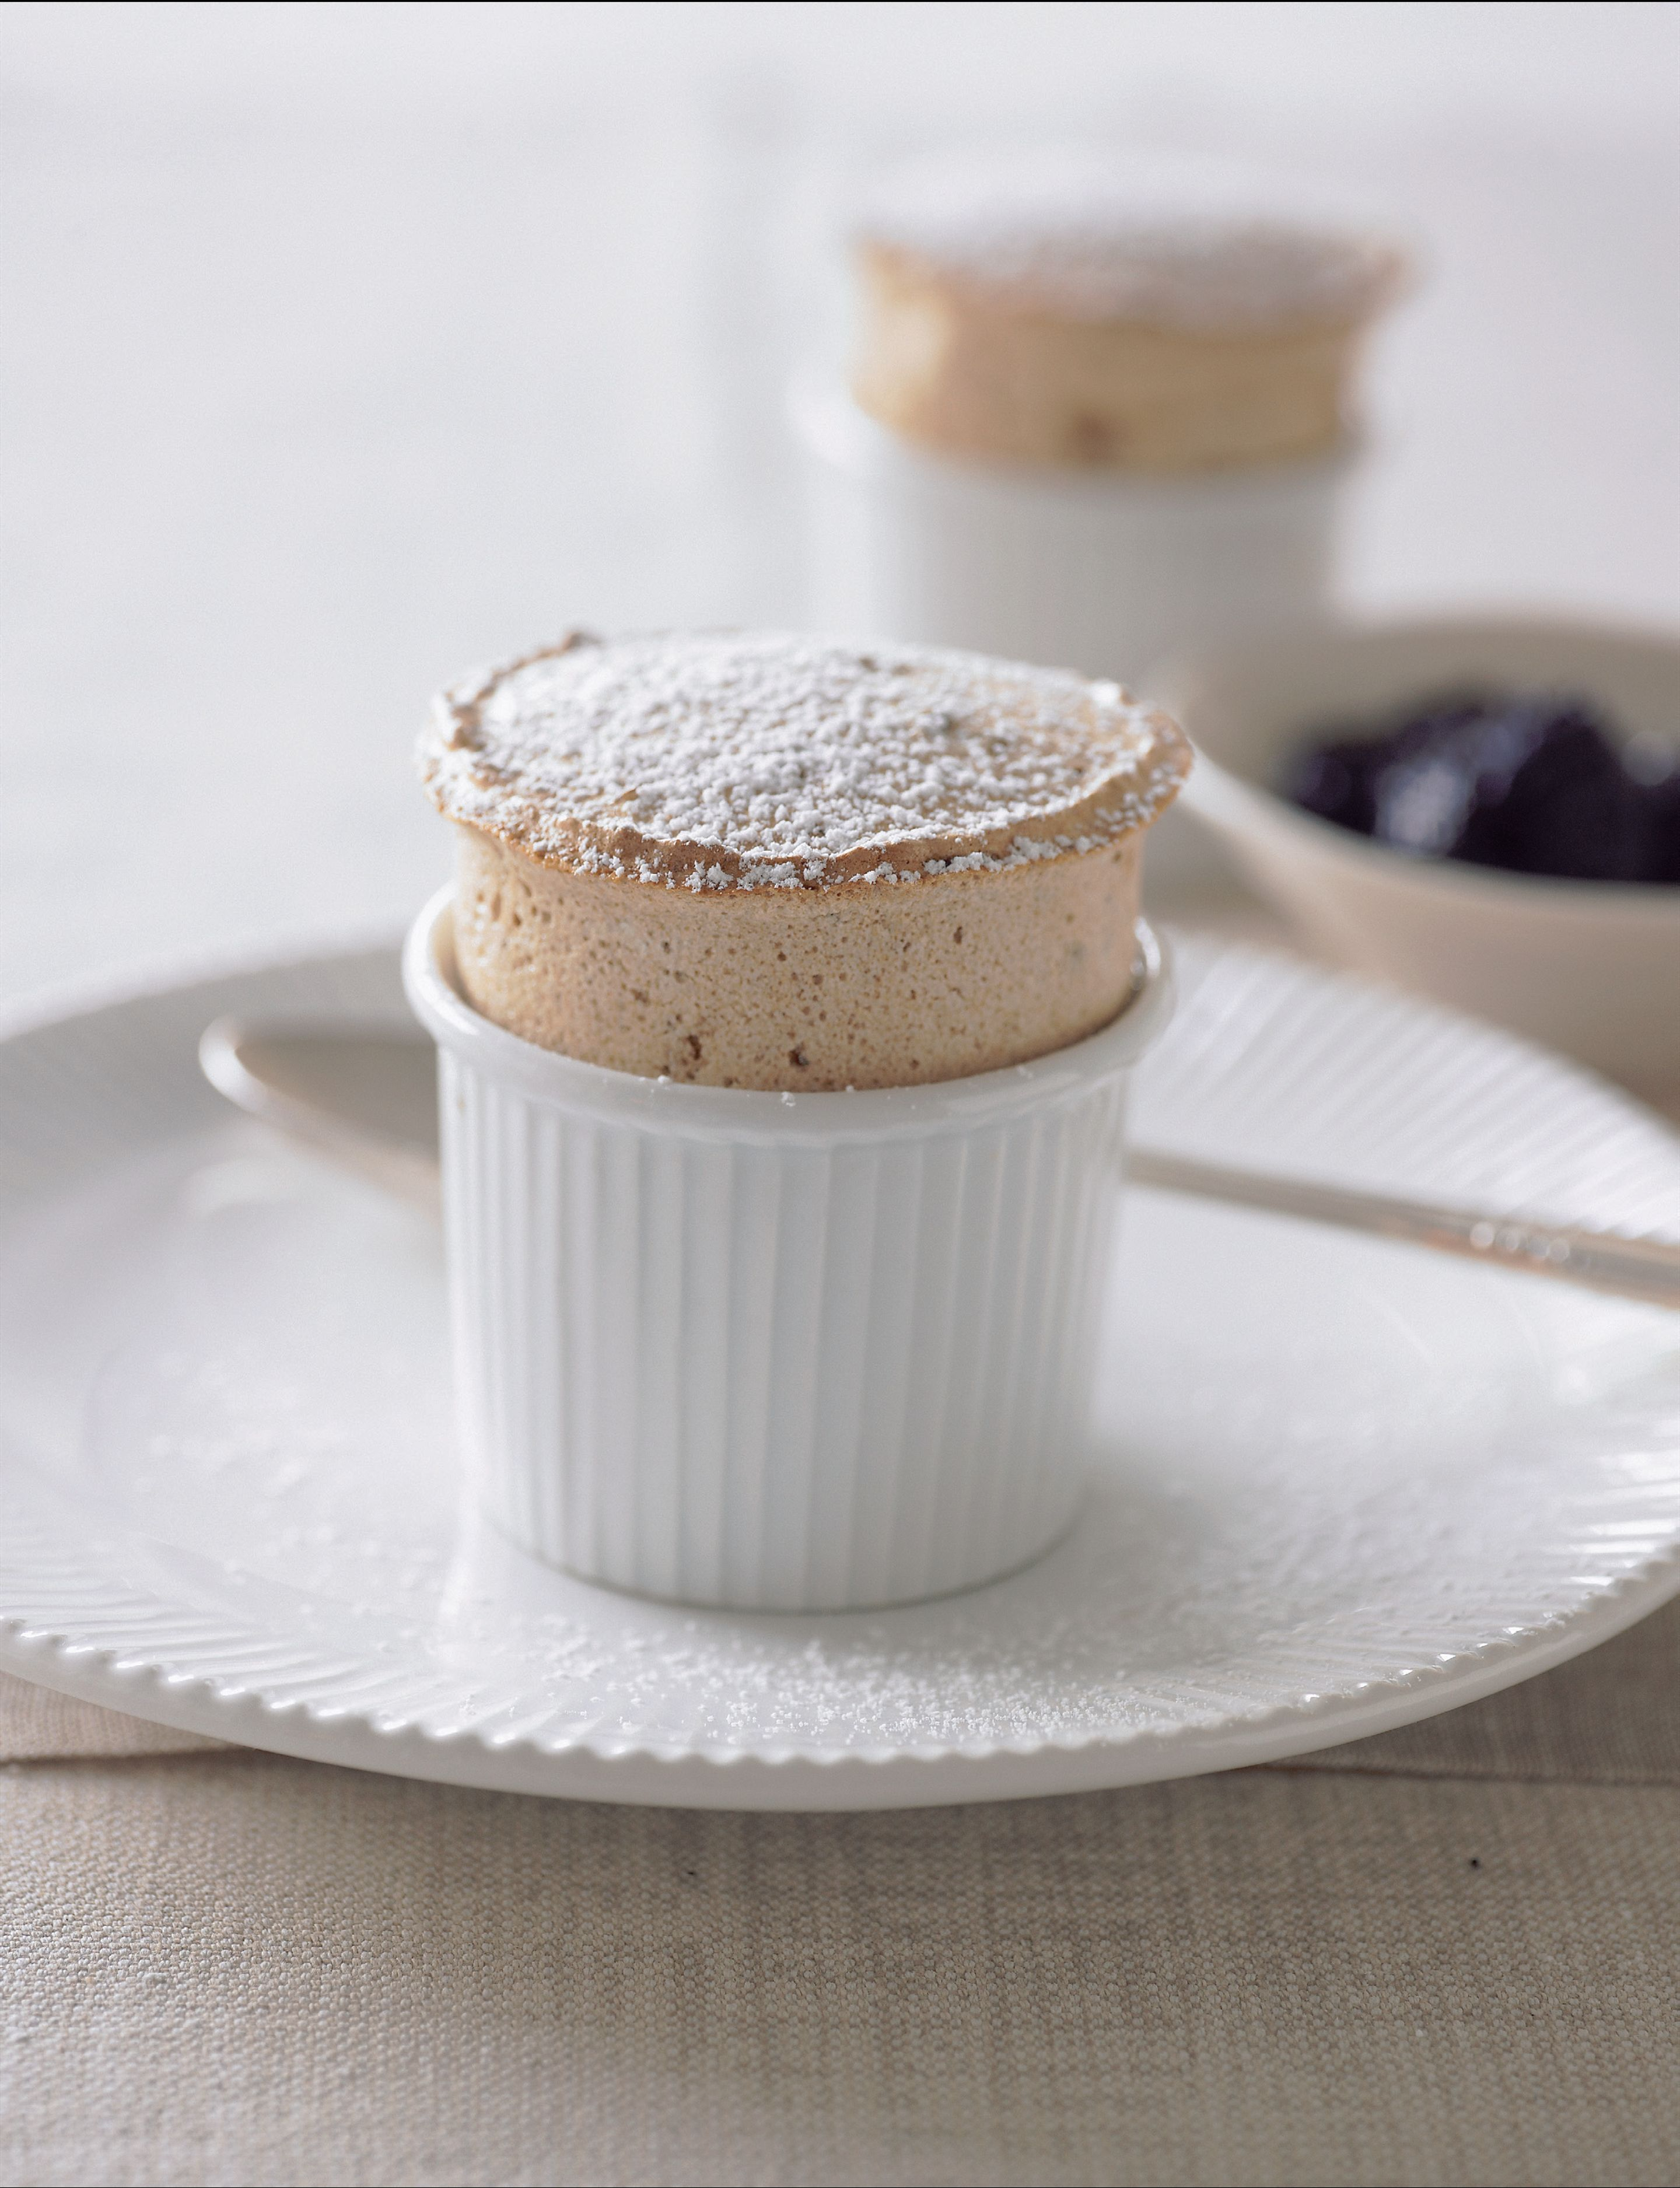 Prune and Armagnac soufflé